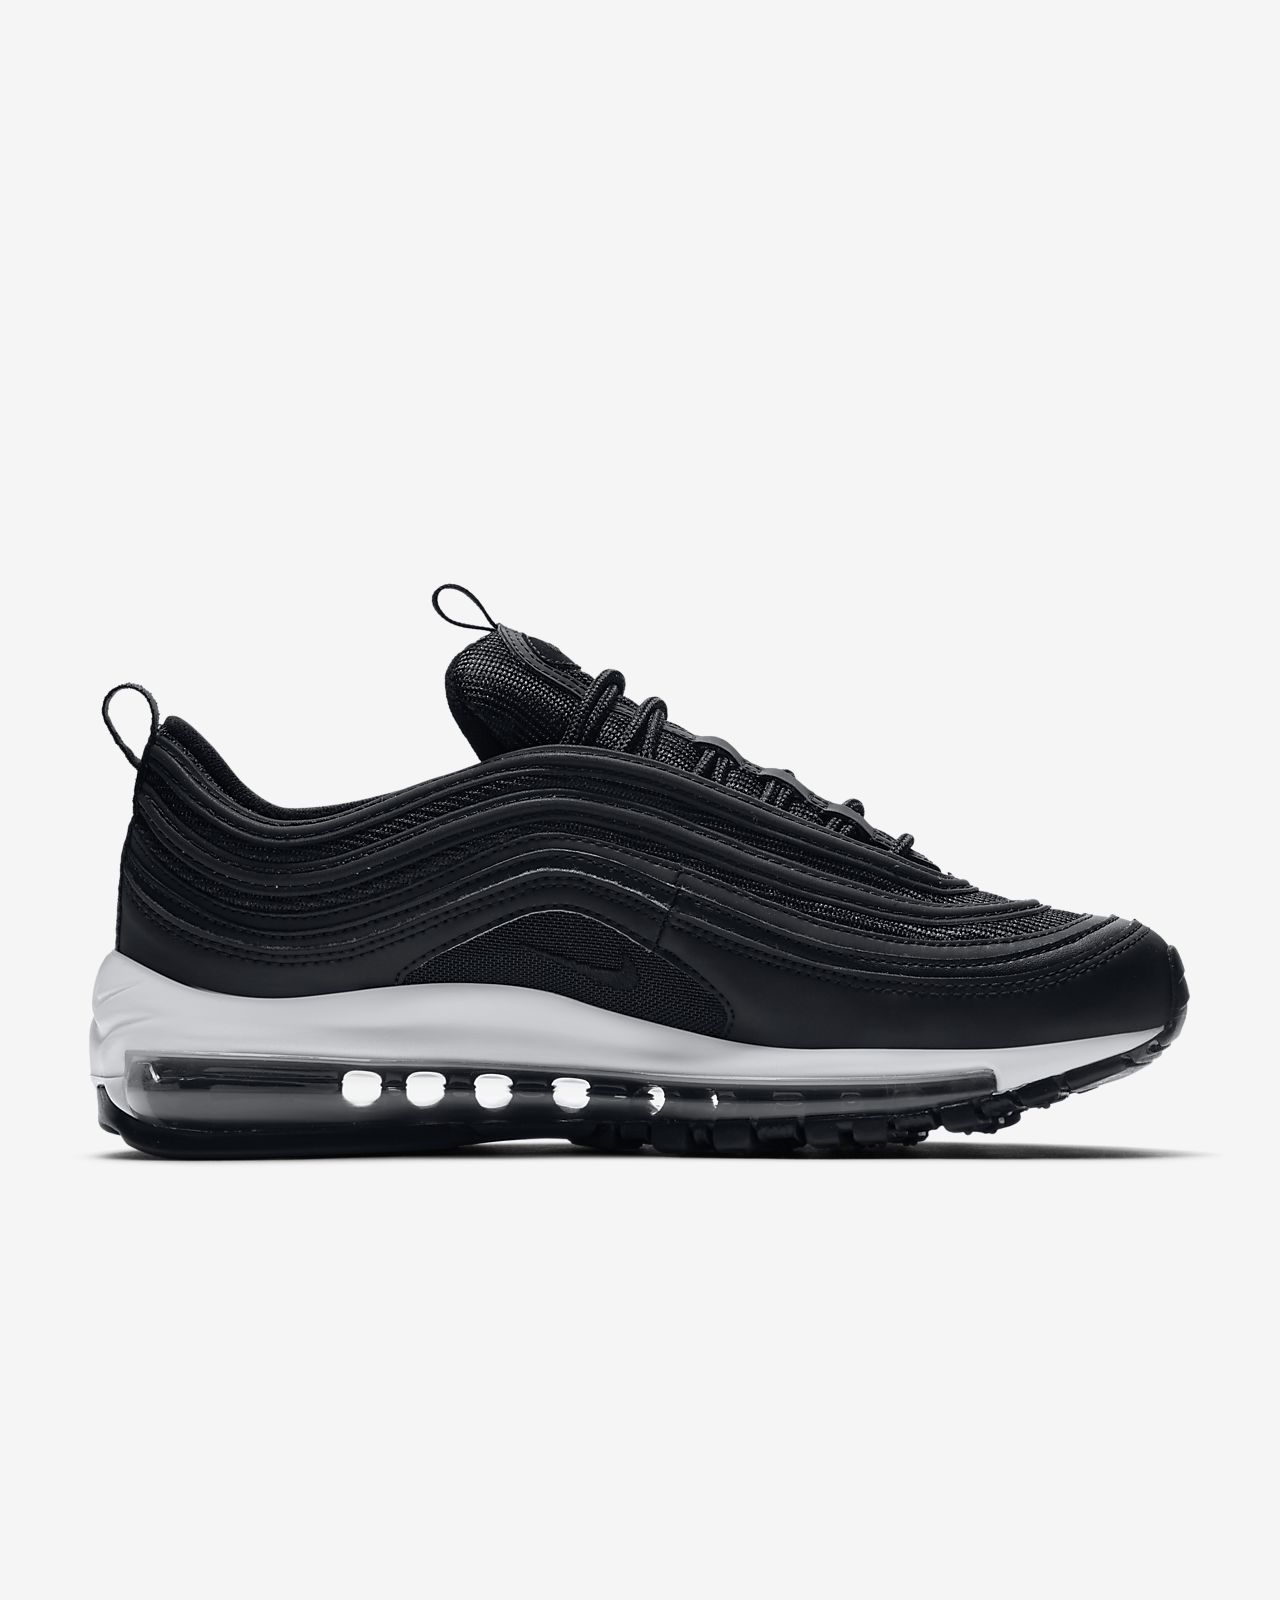 Nike Air Max 97 Damenschuh